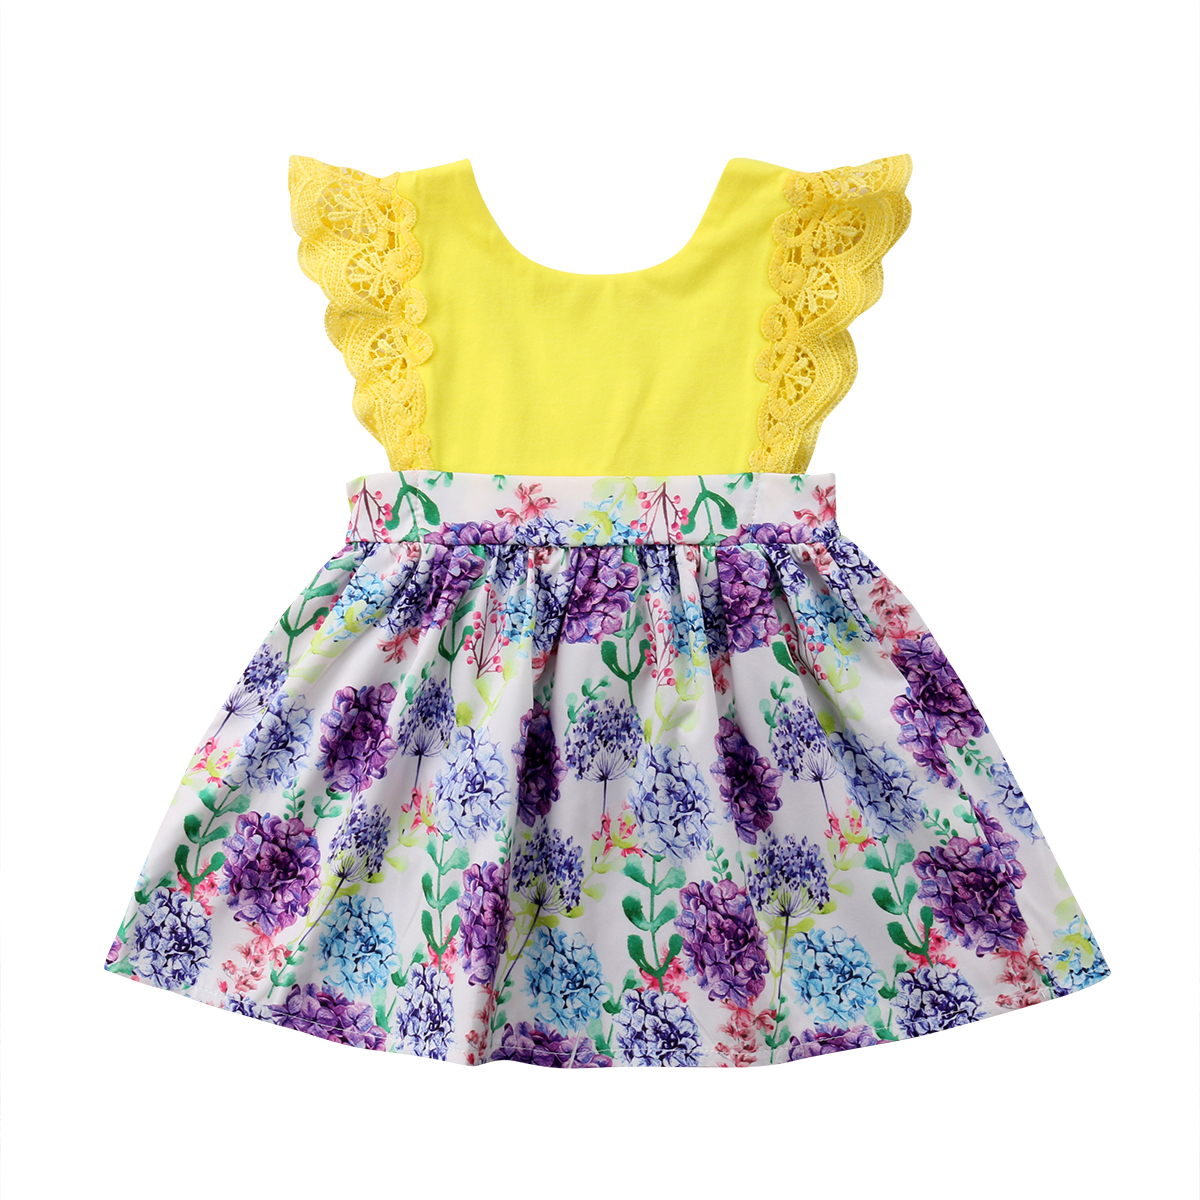 13e57858413 ... Kid Baby Girl Clothes Sister Matching Floral Cotton Casual Popular Romper  Dress Jumpsuit Family Outfit Set. В избранное. gallery image